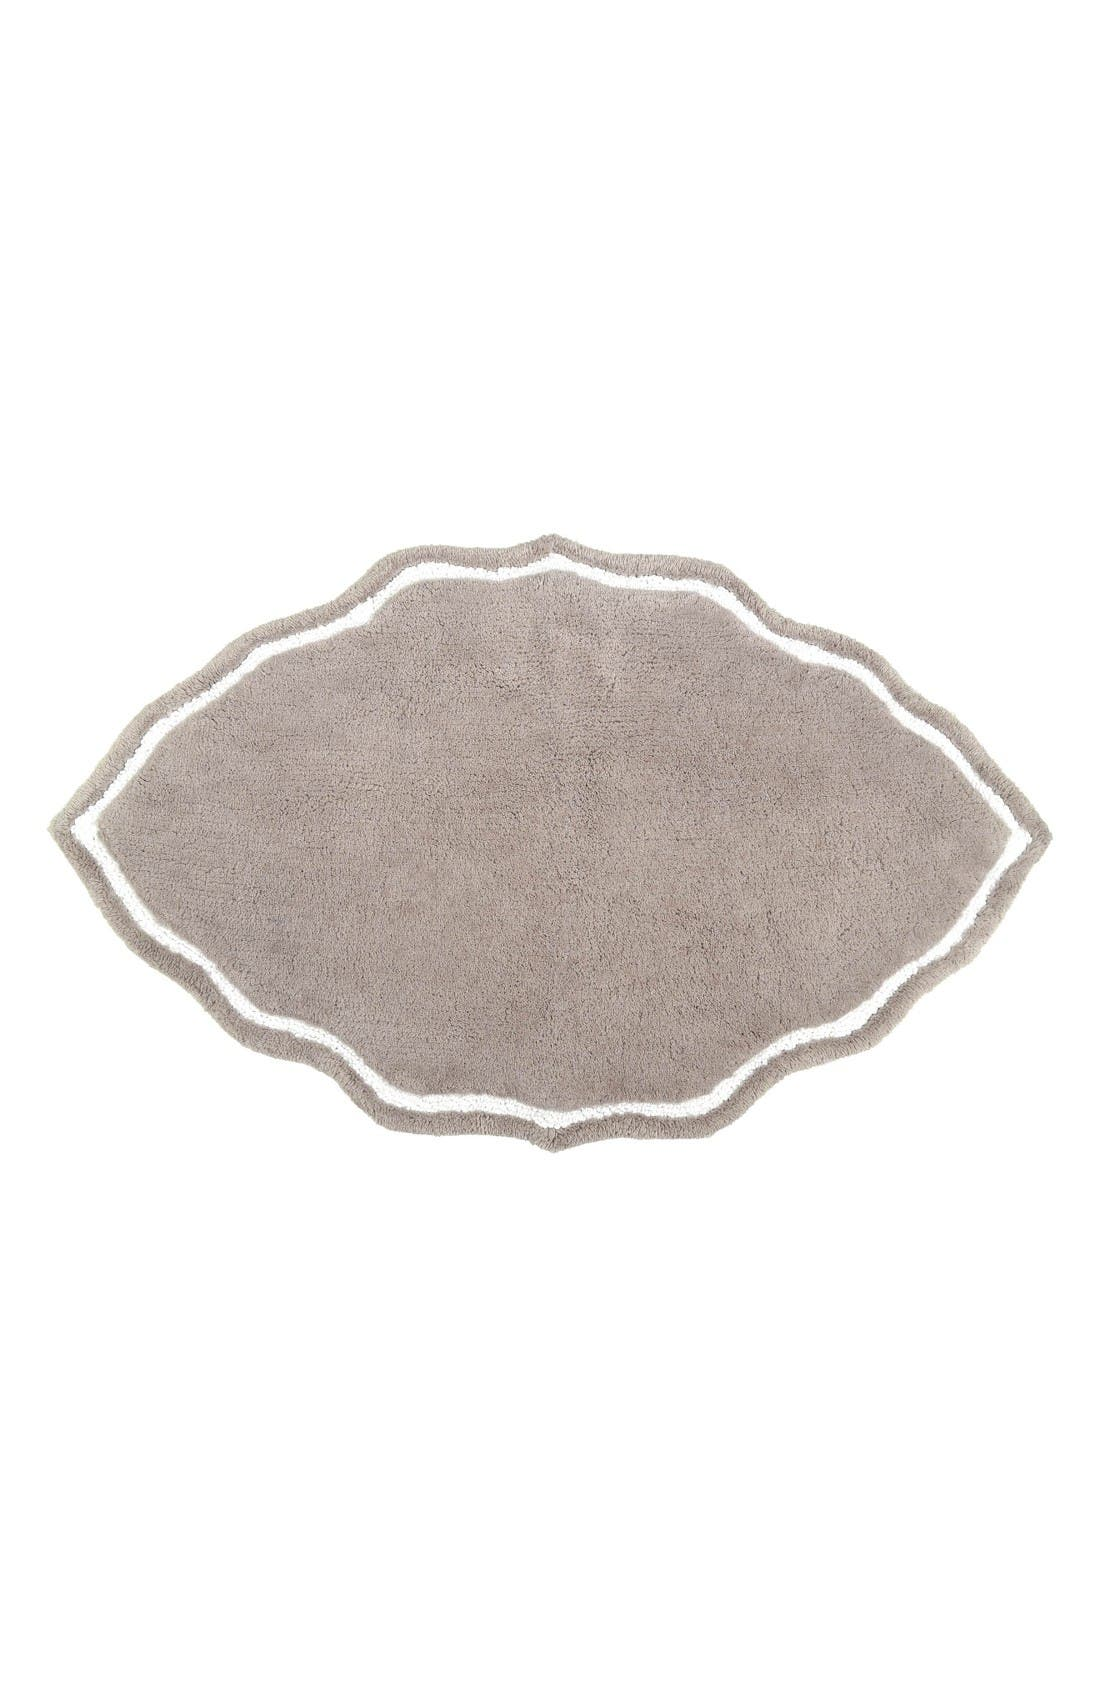 Alternate Image 1 Selected - John Robshaw Signature Tufted Bath Rug